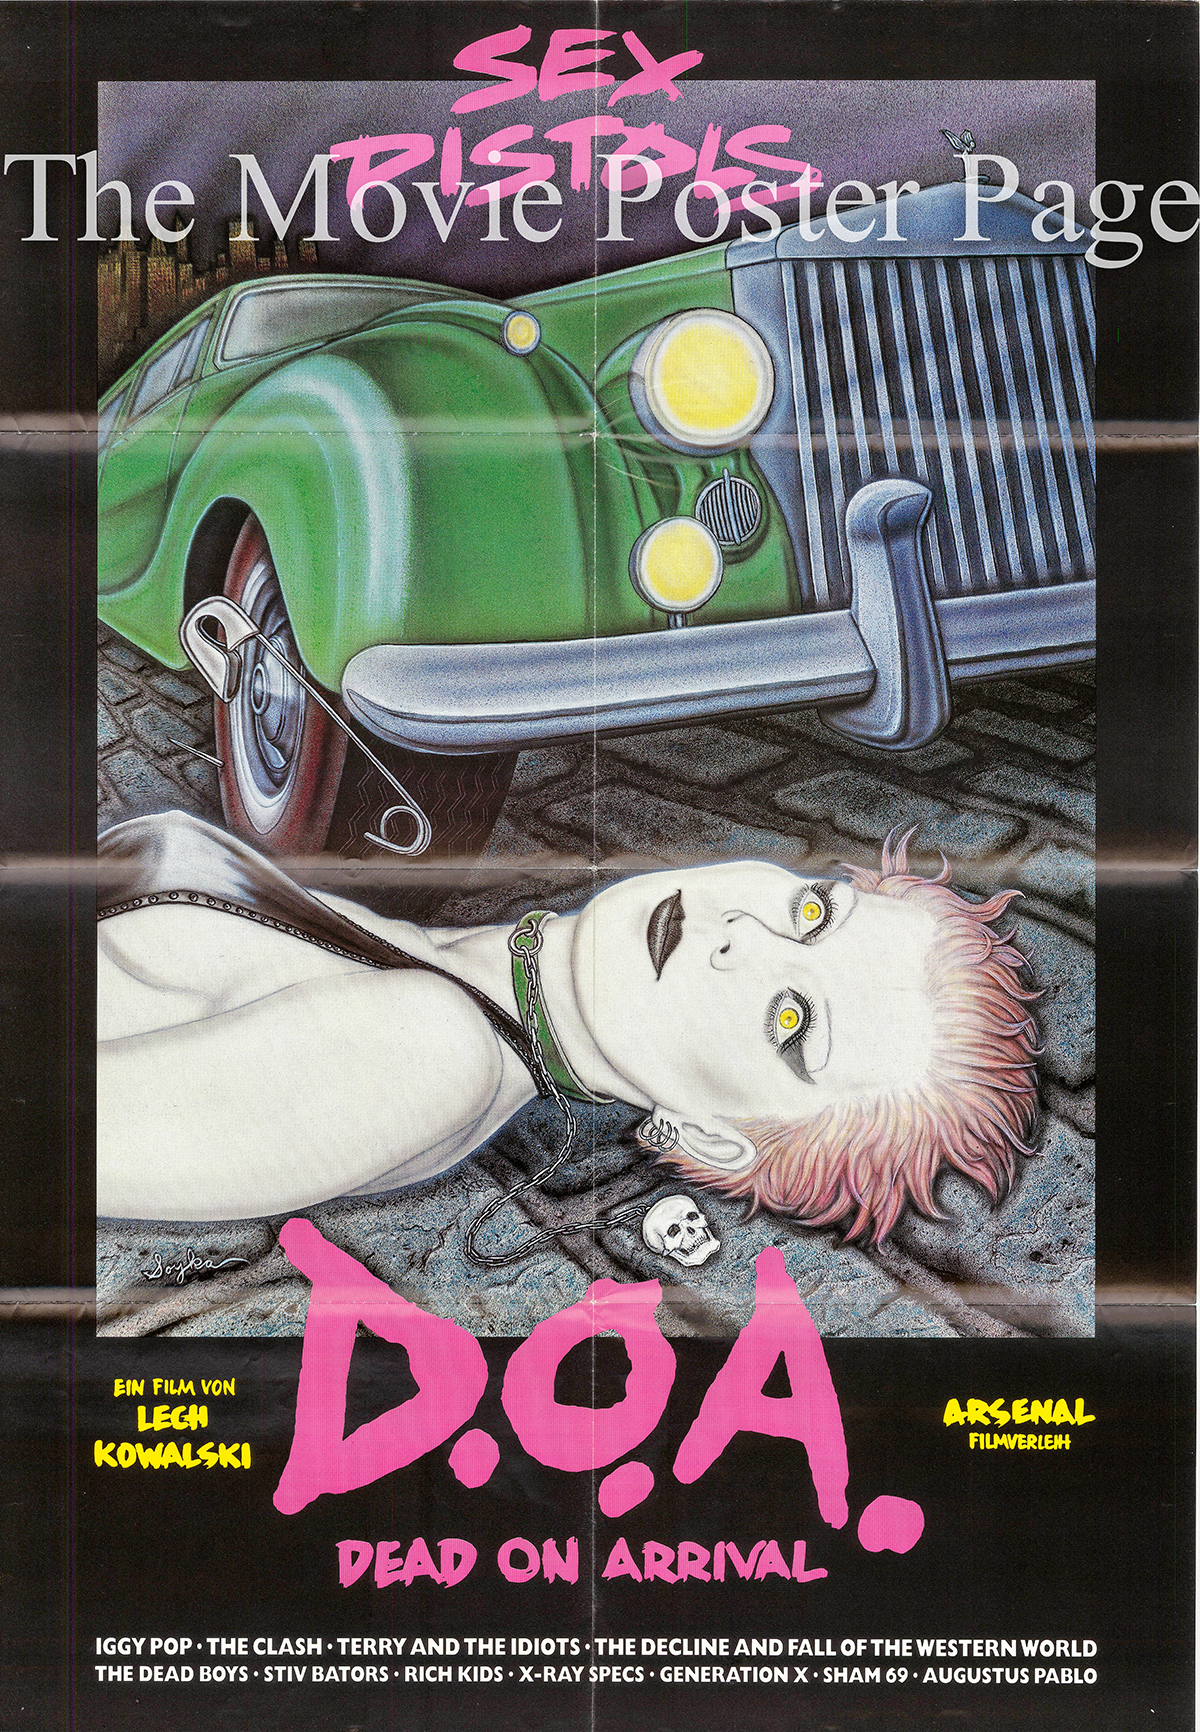 Pictured is a German one-sheet poster for the 1980 Lech Kowalski film D.O.A. starring the Sex Pistols.